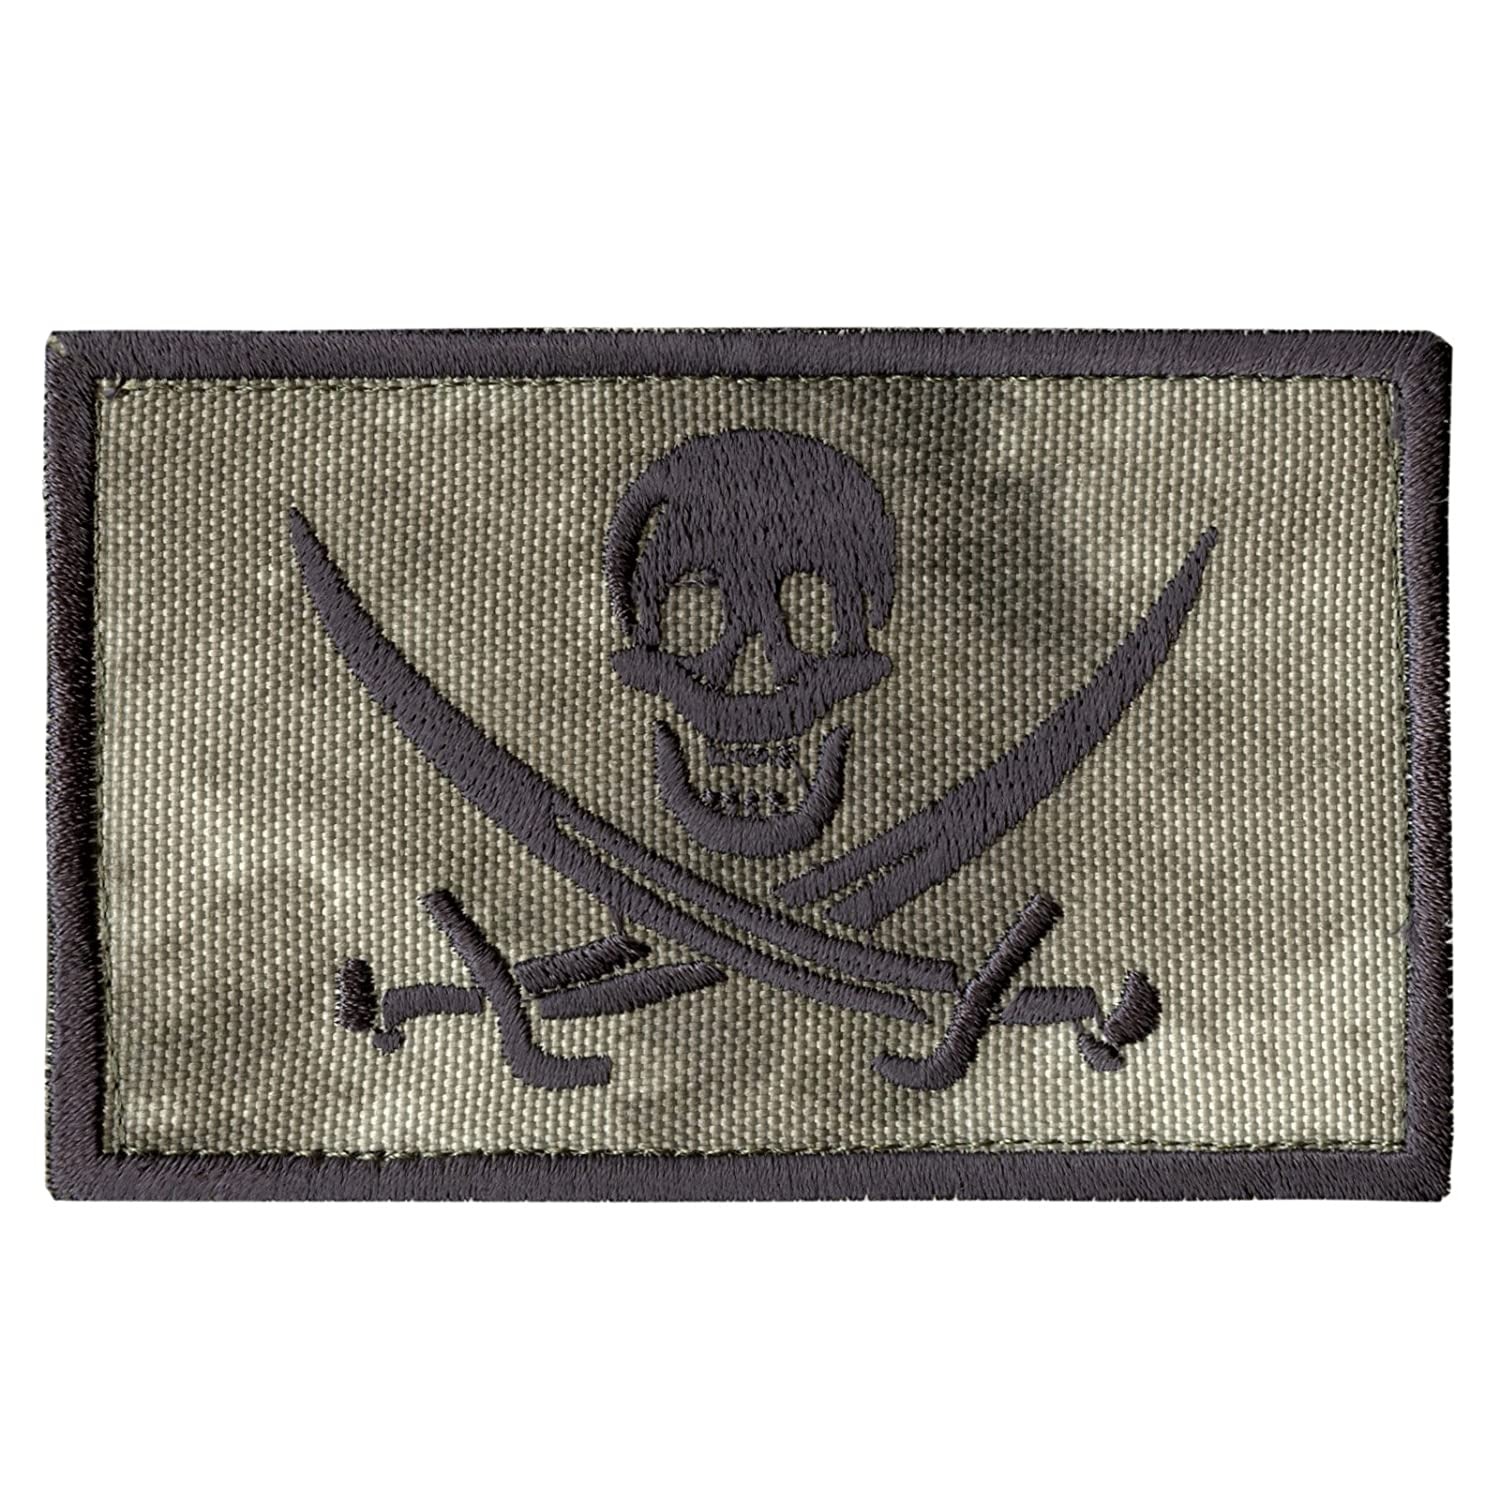 2AFTER1 A-TACS AU Calico Jack Skull Arid Pirate Jolly Roger Morale ISAF Sew Iron on Patch P.0682.702.C